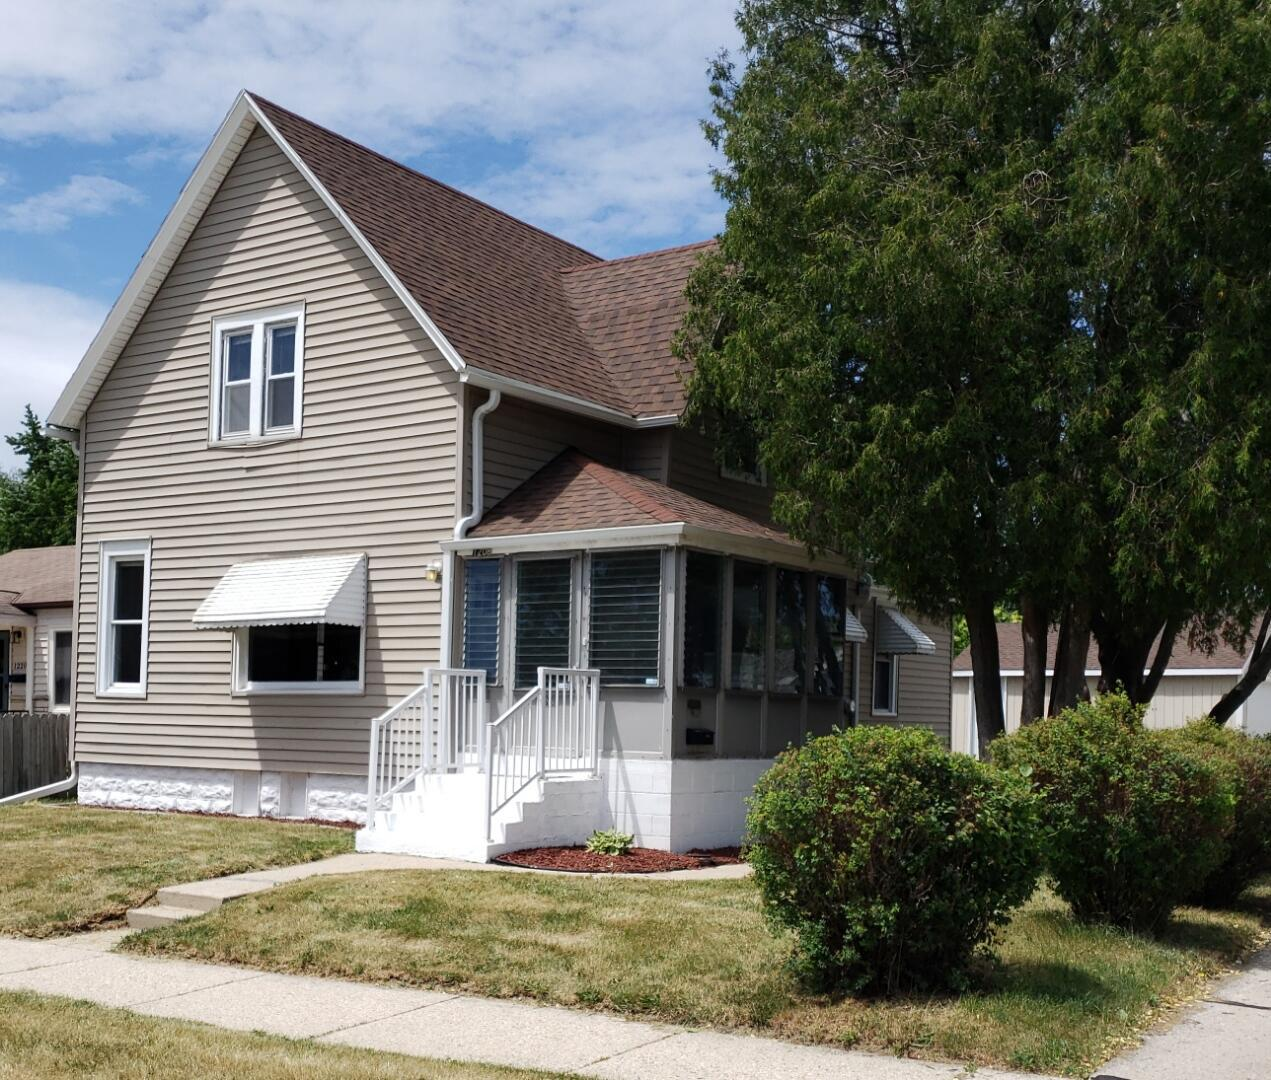 1208 Manistique Ave AVENUE, SOUTH MILWAUKEE, WI 53172